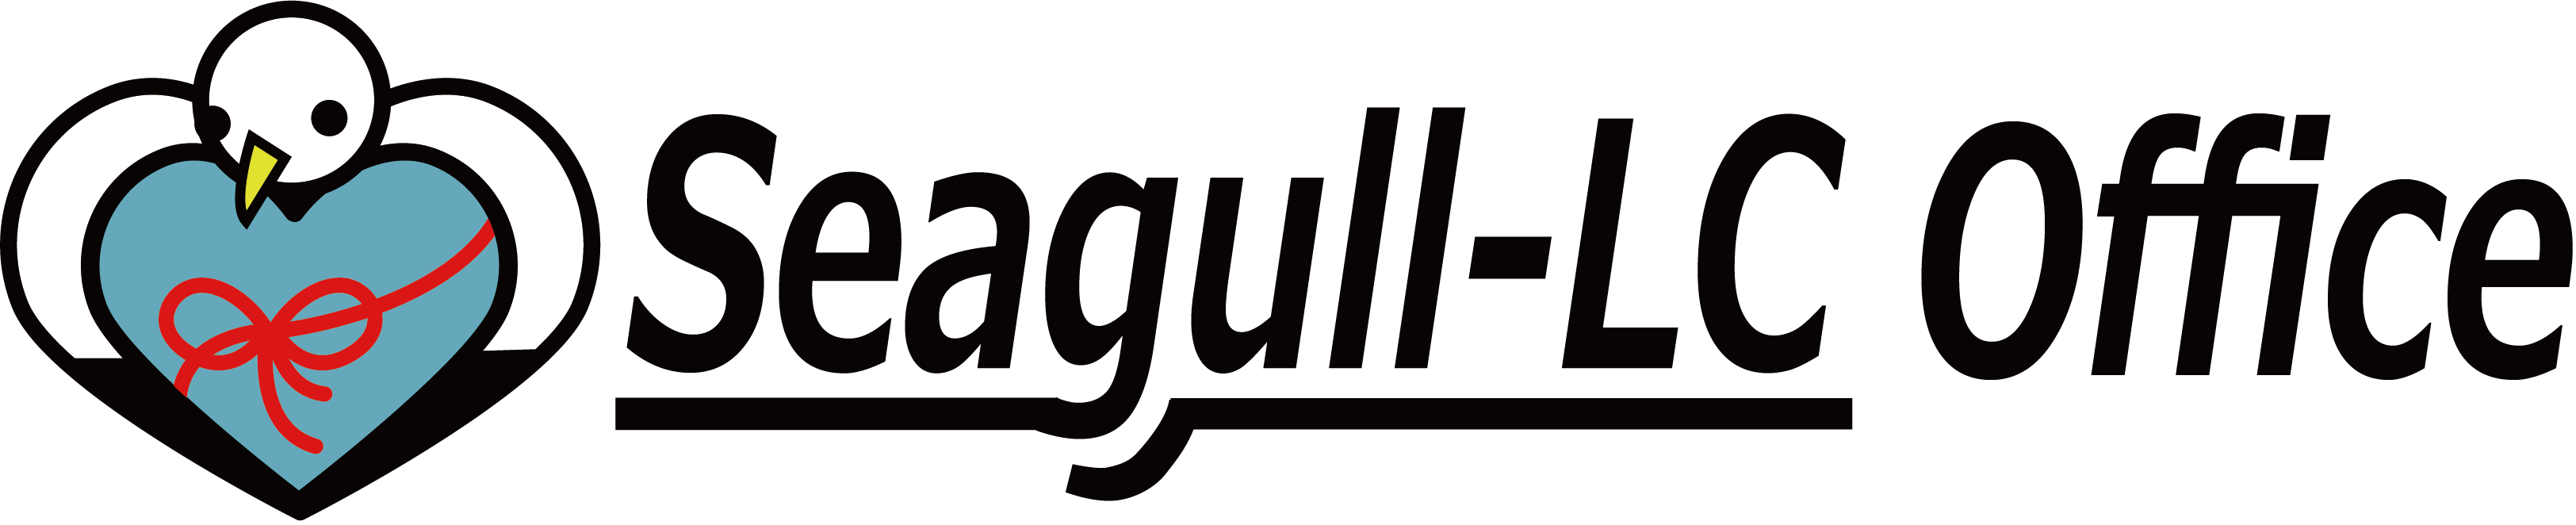 Seagull-LC Office